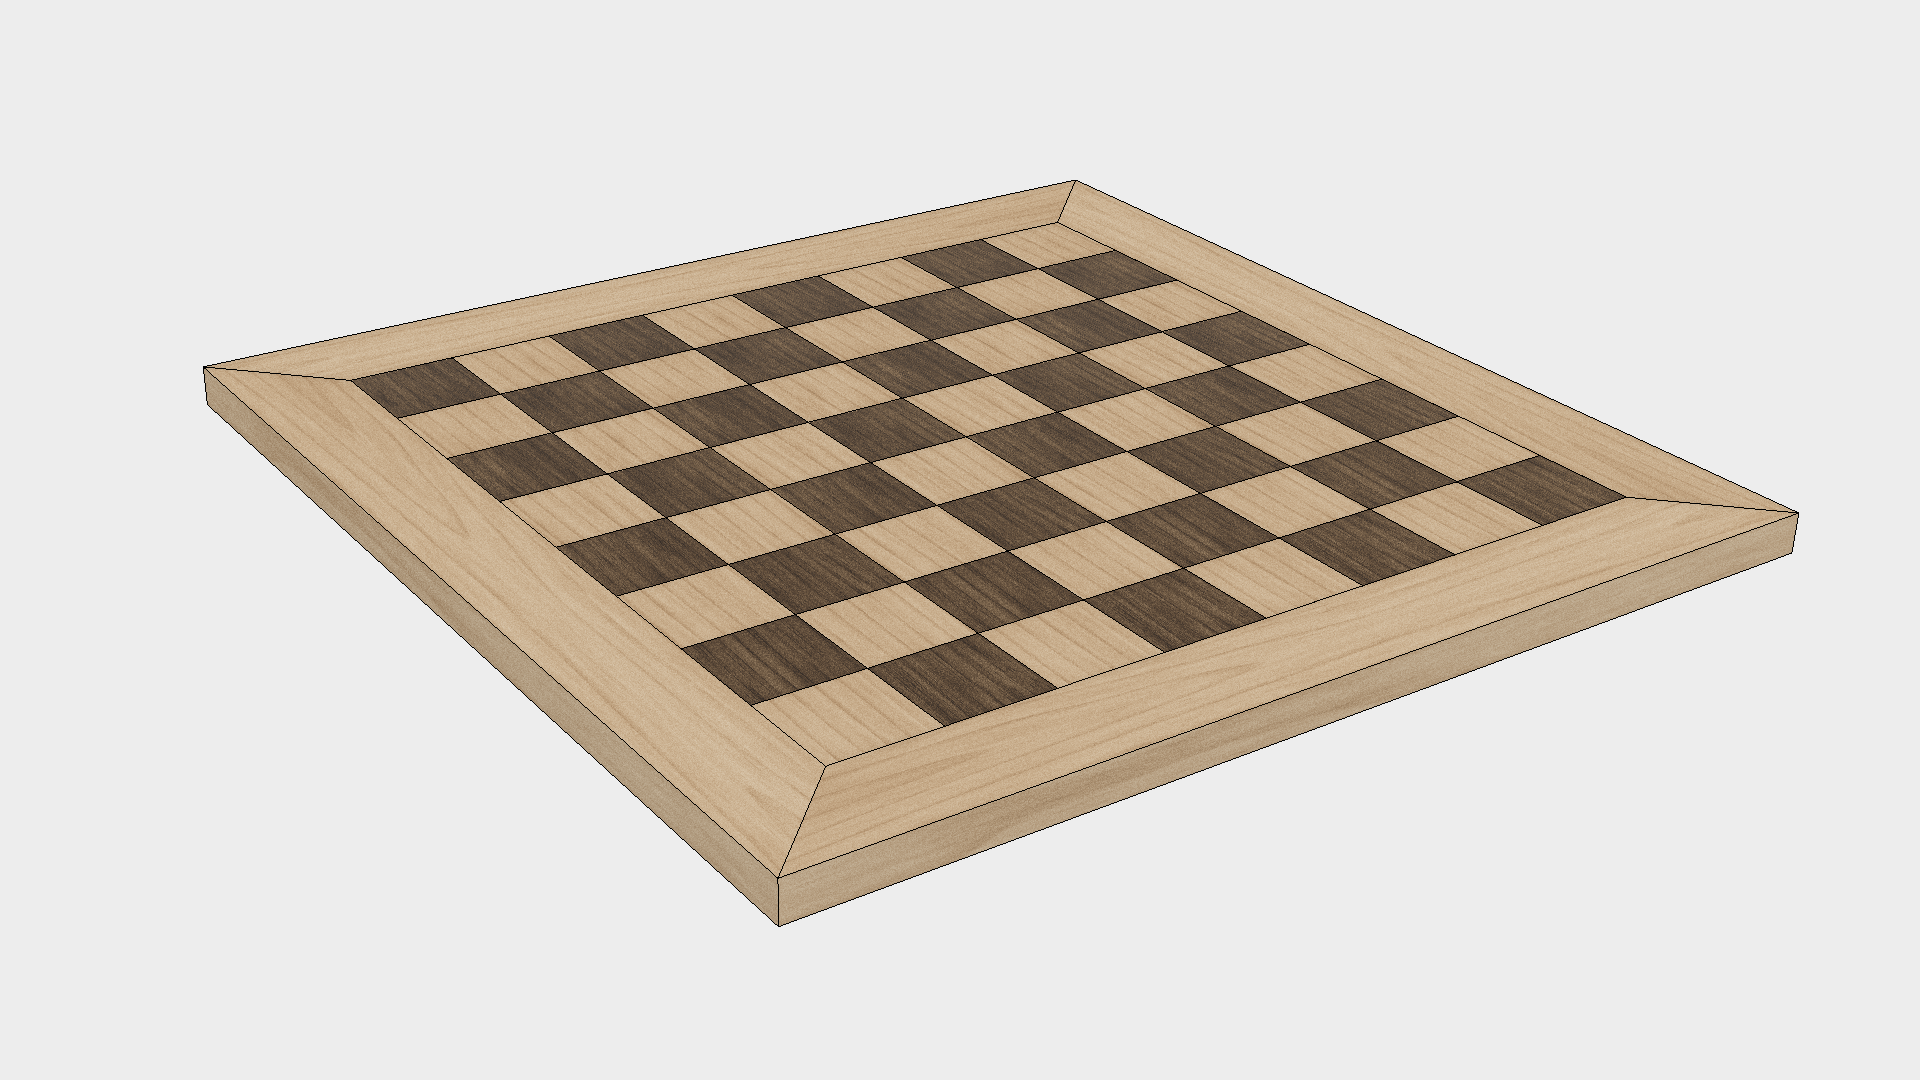 Diy Wood Chess Board Woodworking Project How To Make A Wood Chess Board